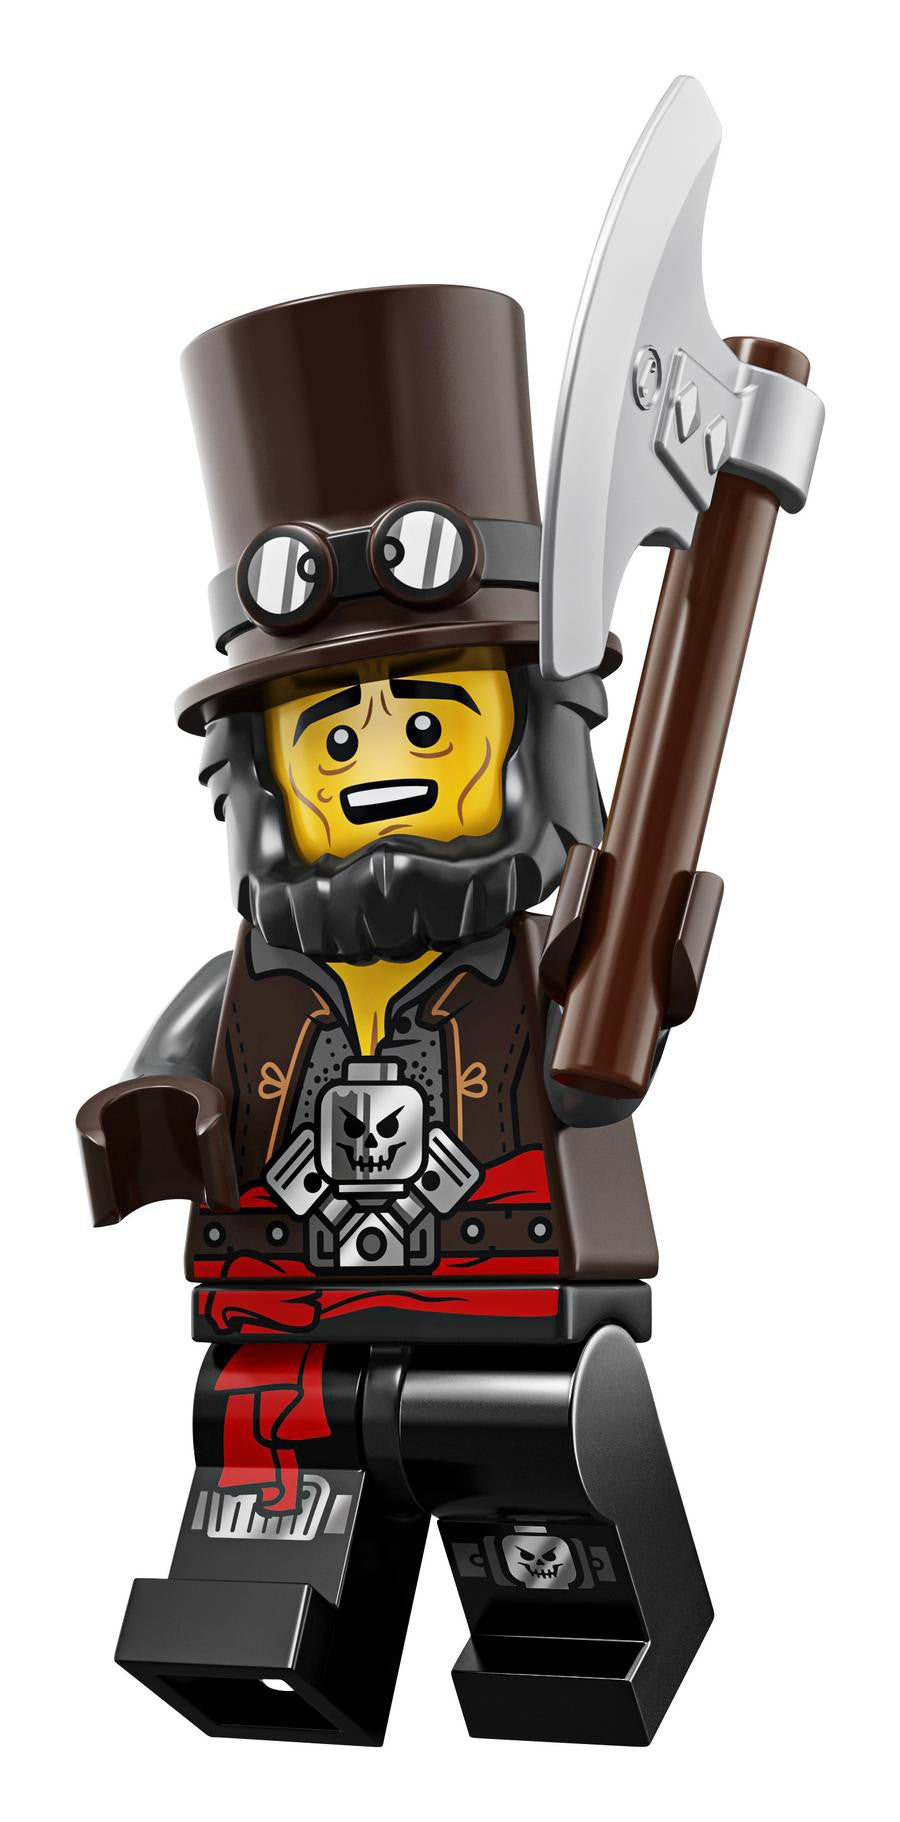 The LEGO Movie 2 Minifigure Series 71023 APOCALYPSEBURG ABE LINCOLN